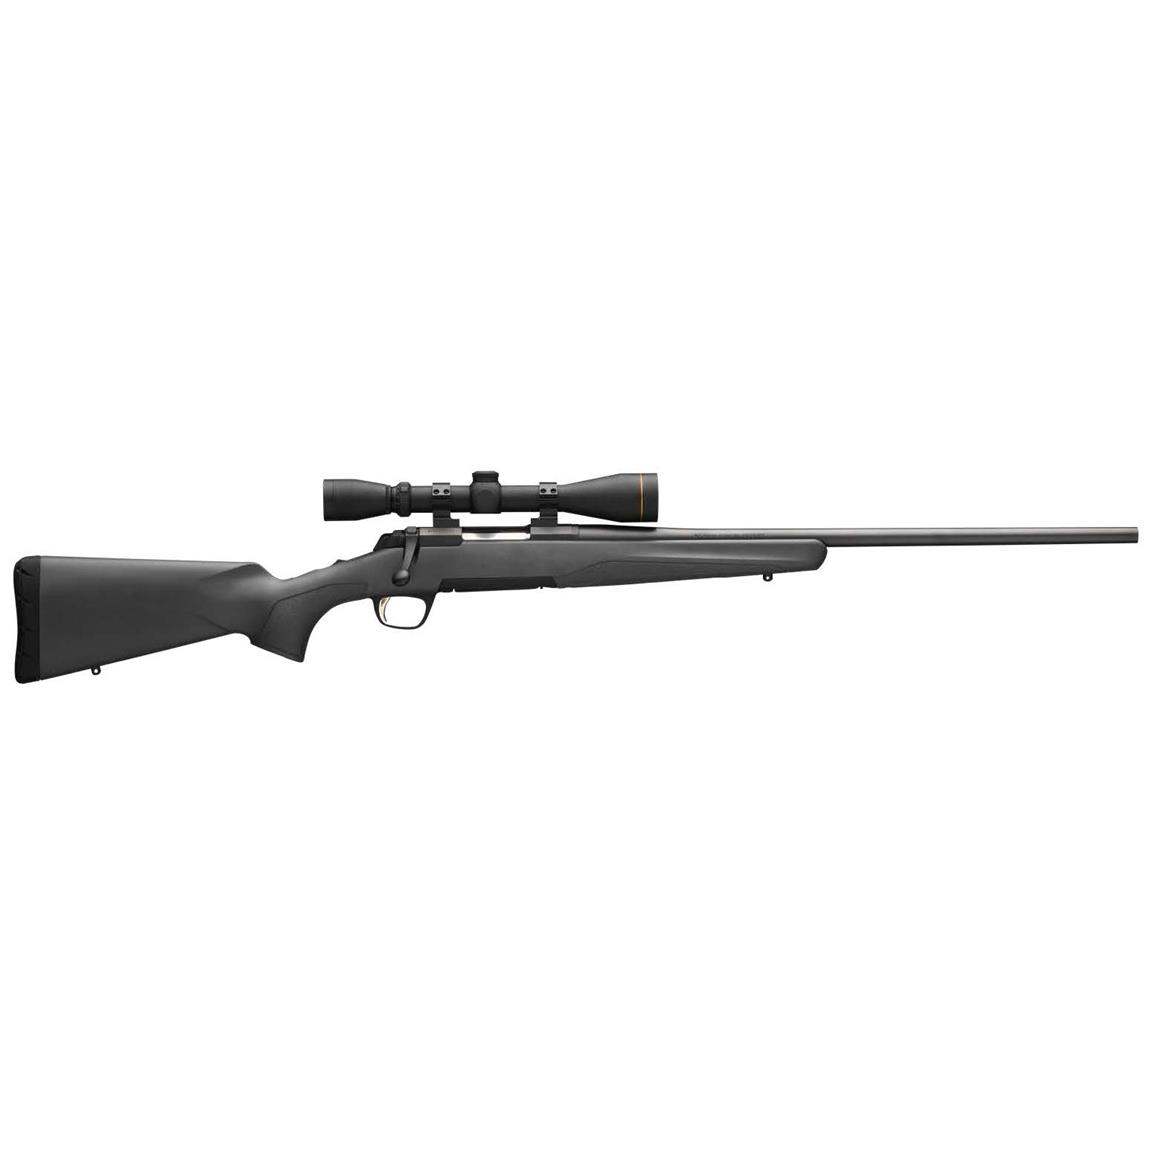 Browning X-Bolt Leupold Combo, Bolt Action, .300 WSM, Leupold VX-1 Scope, 3+1 Rounds